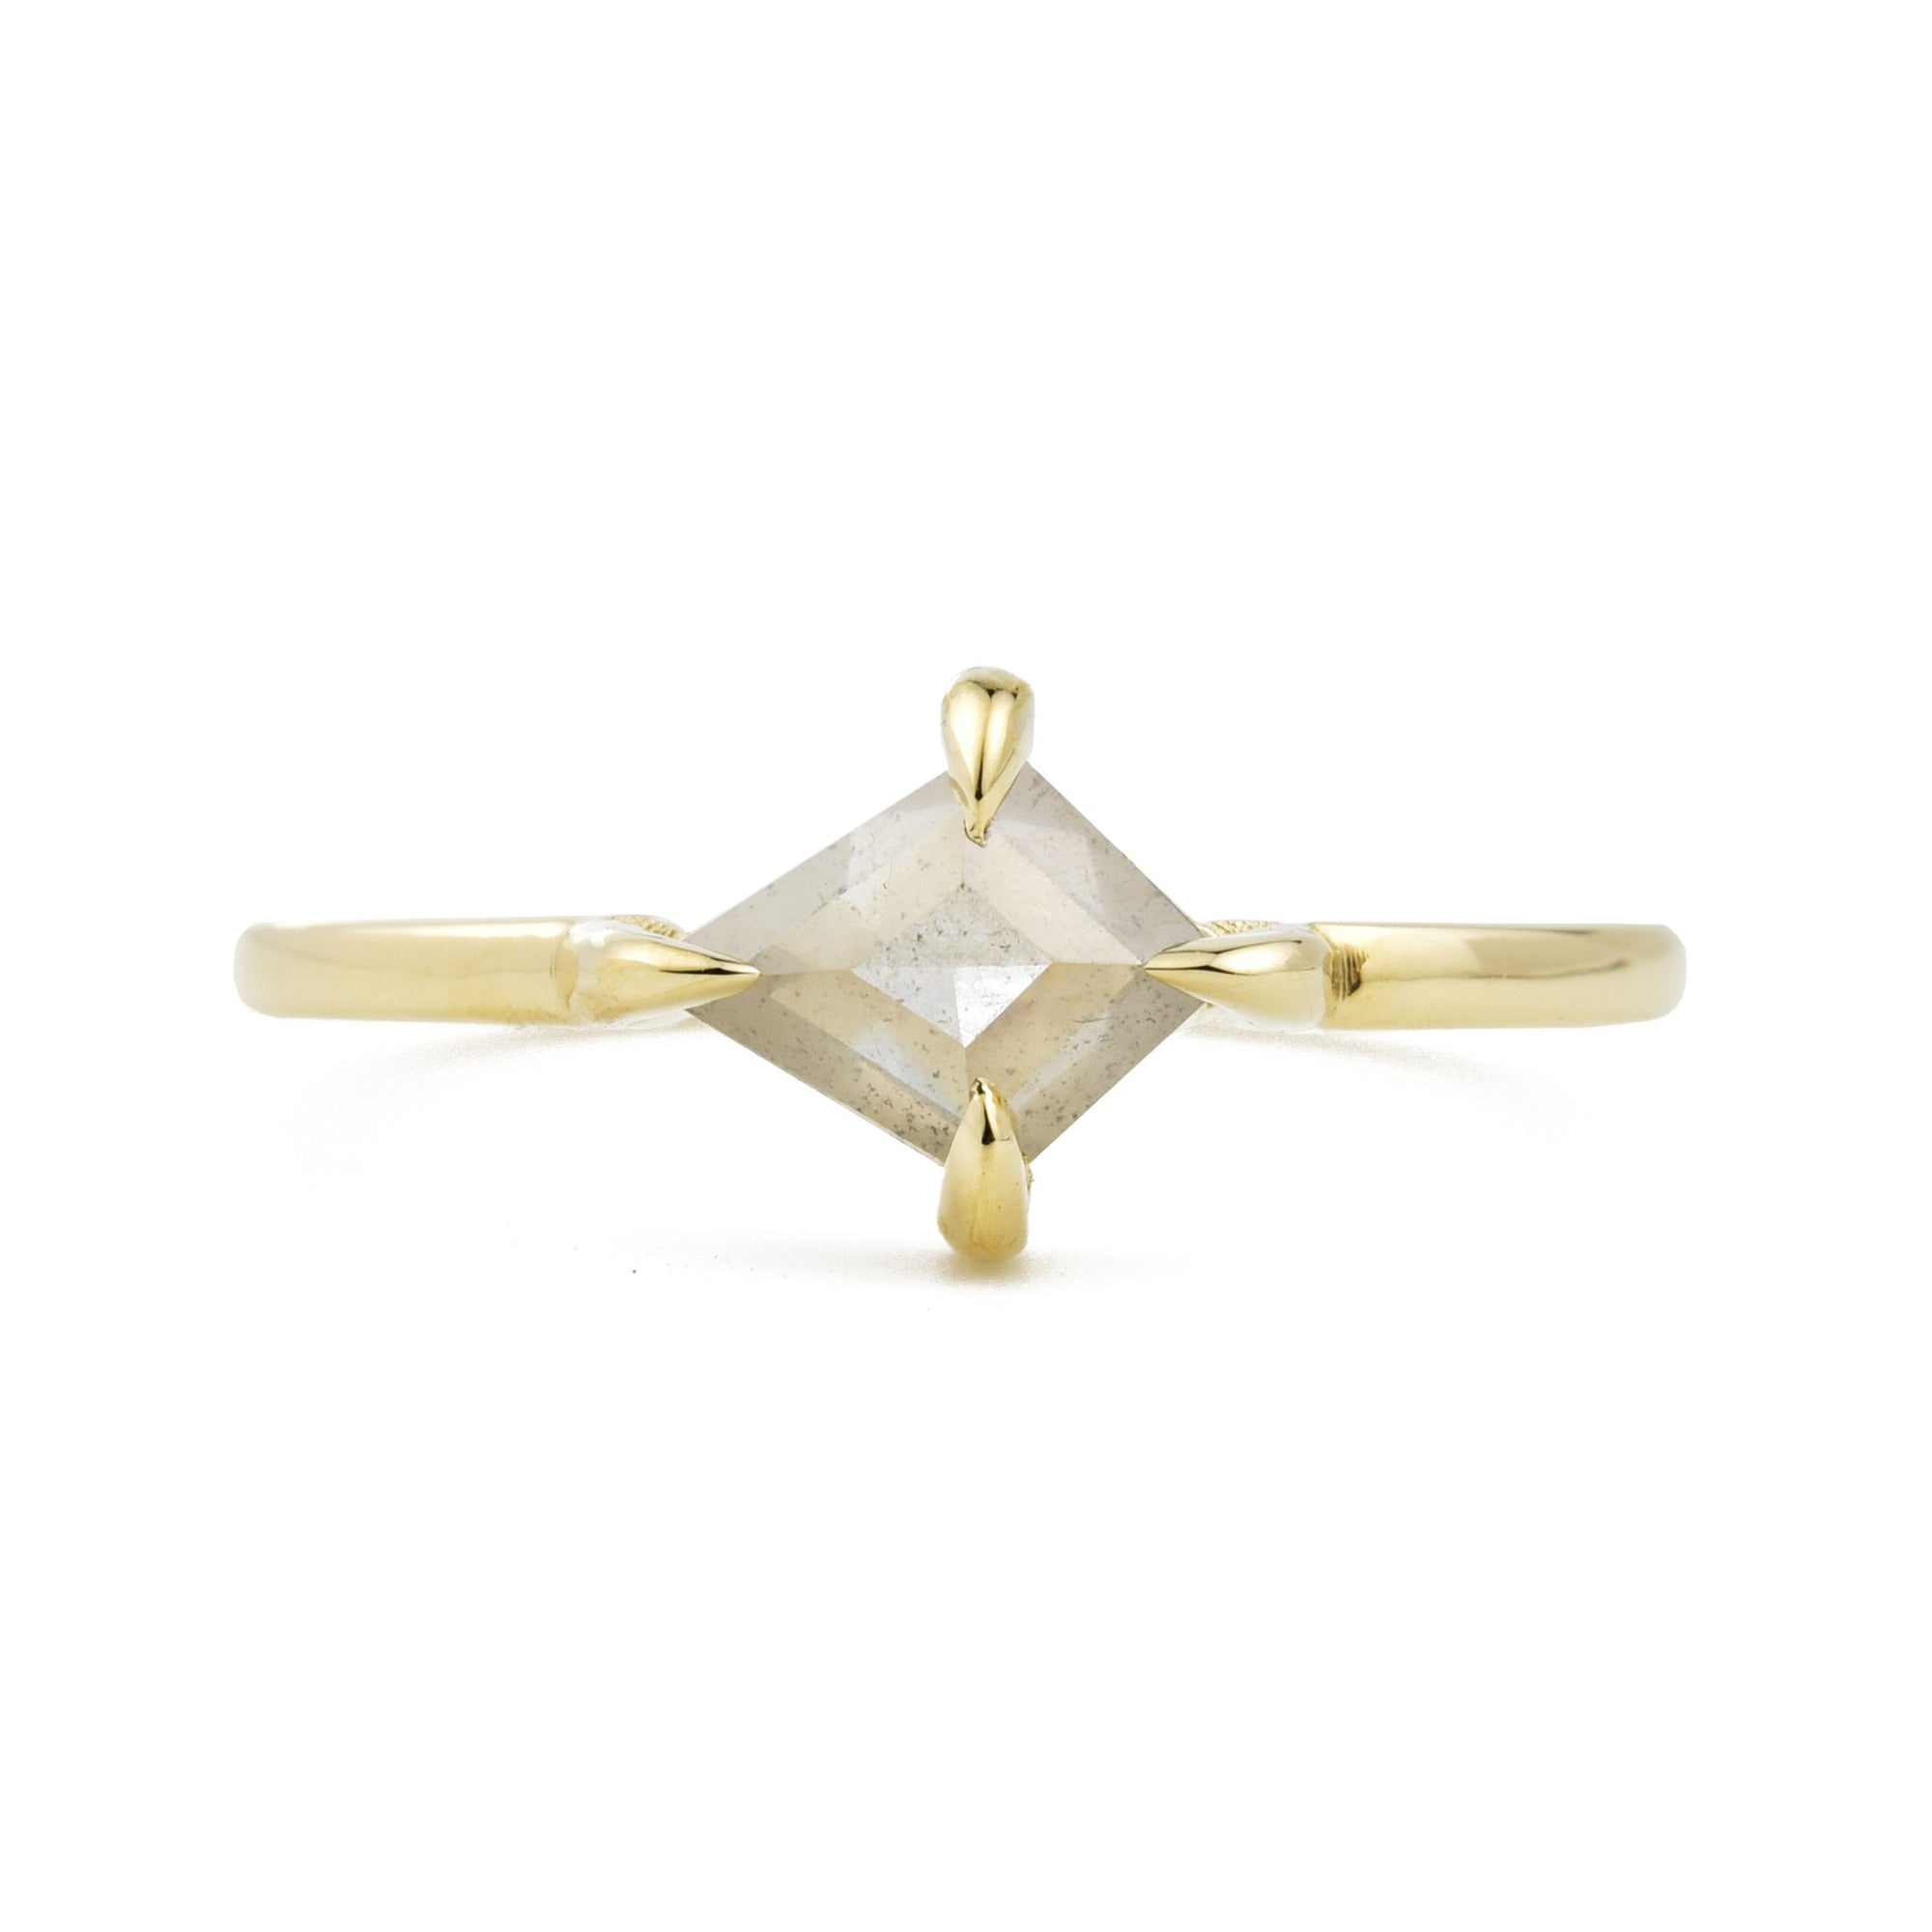 Eva Gray Kite Diamond Ring